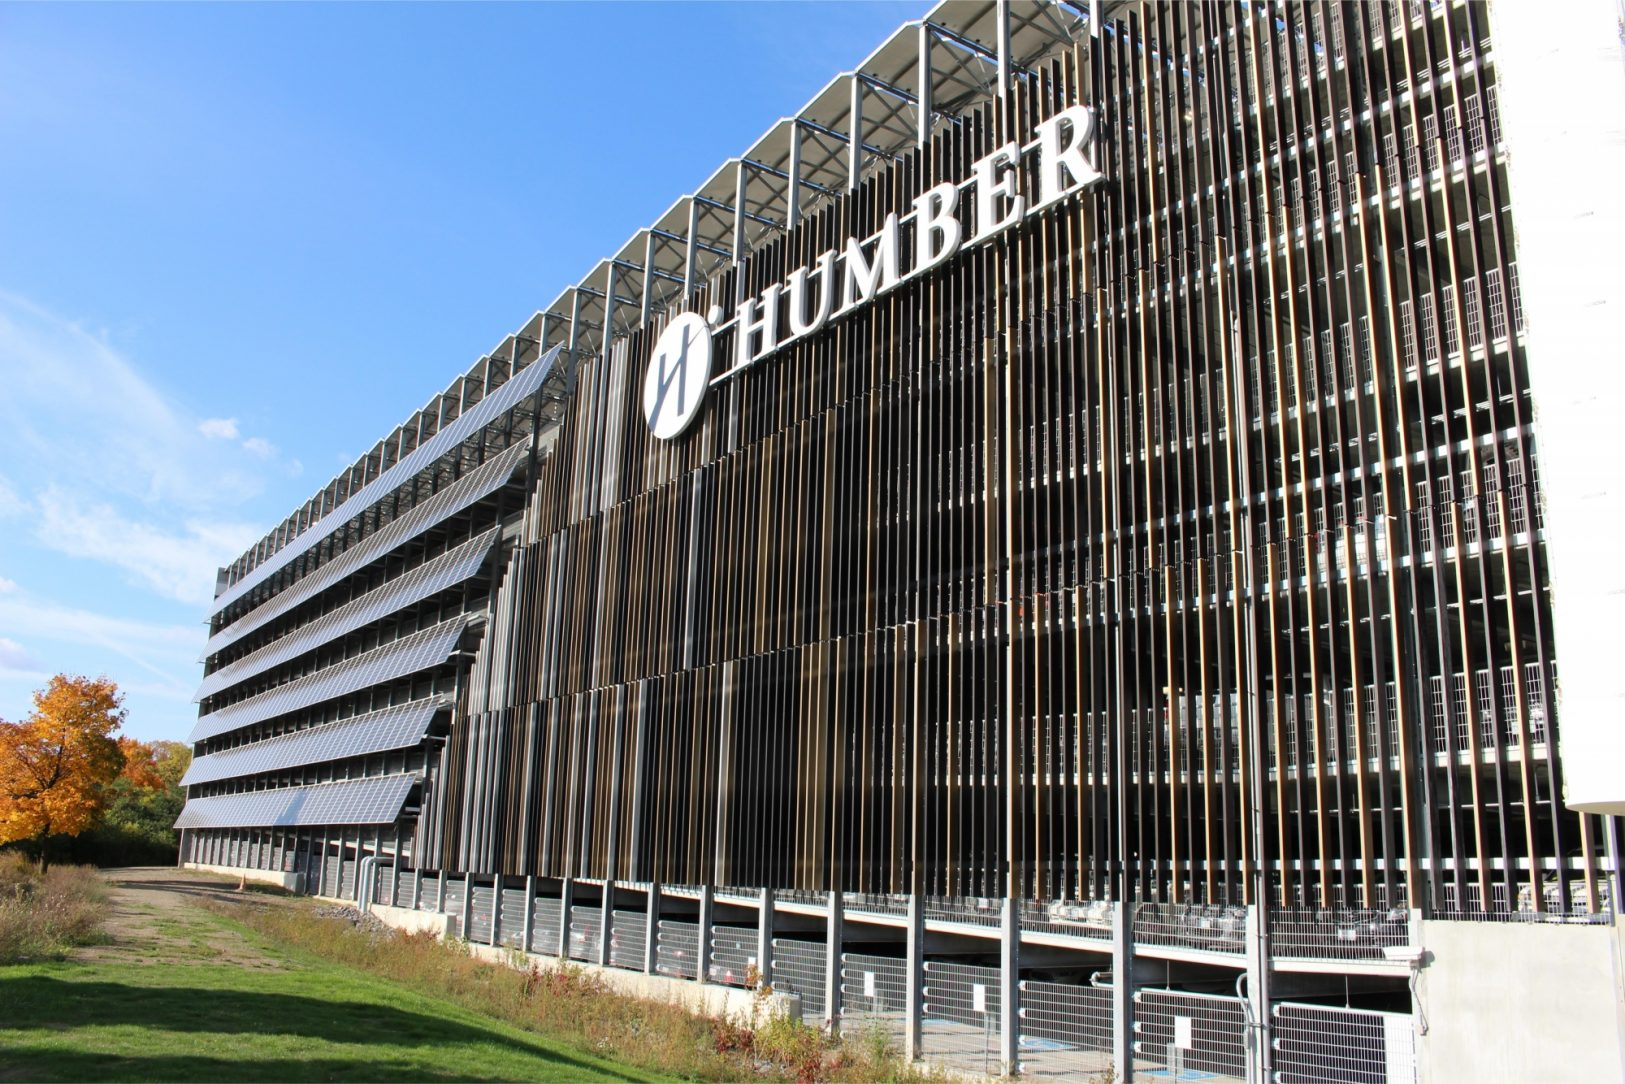 Humber College Parking Structure American Galvanizers Association